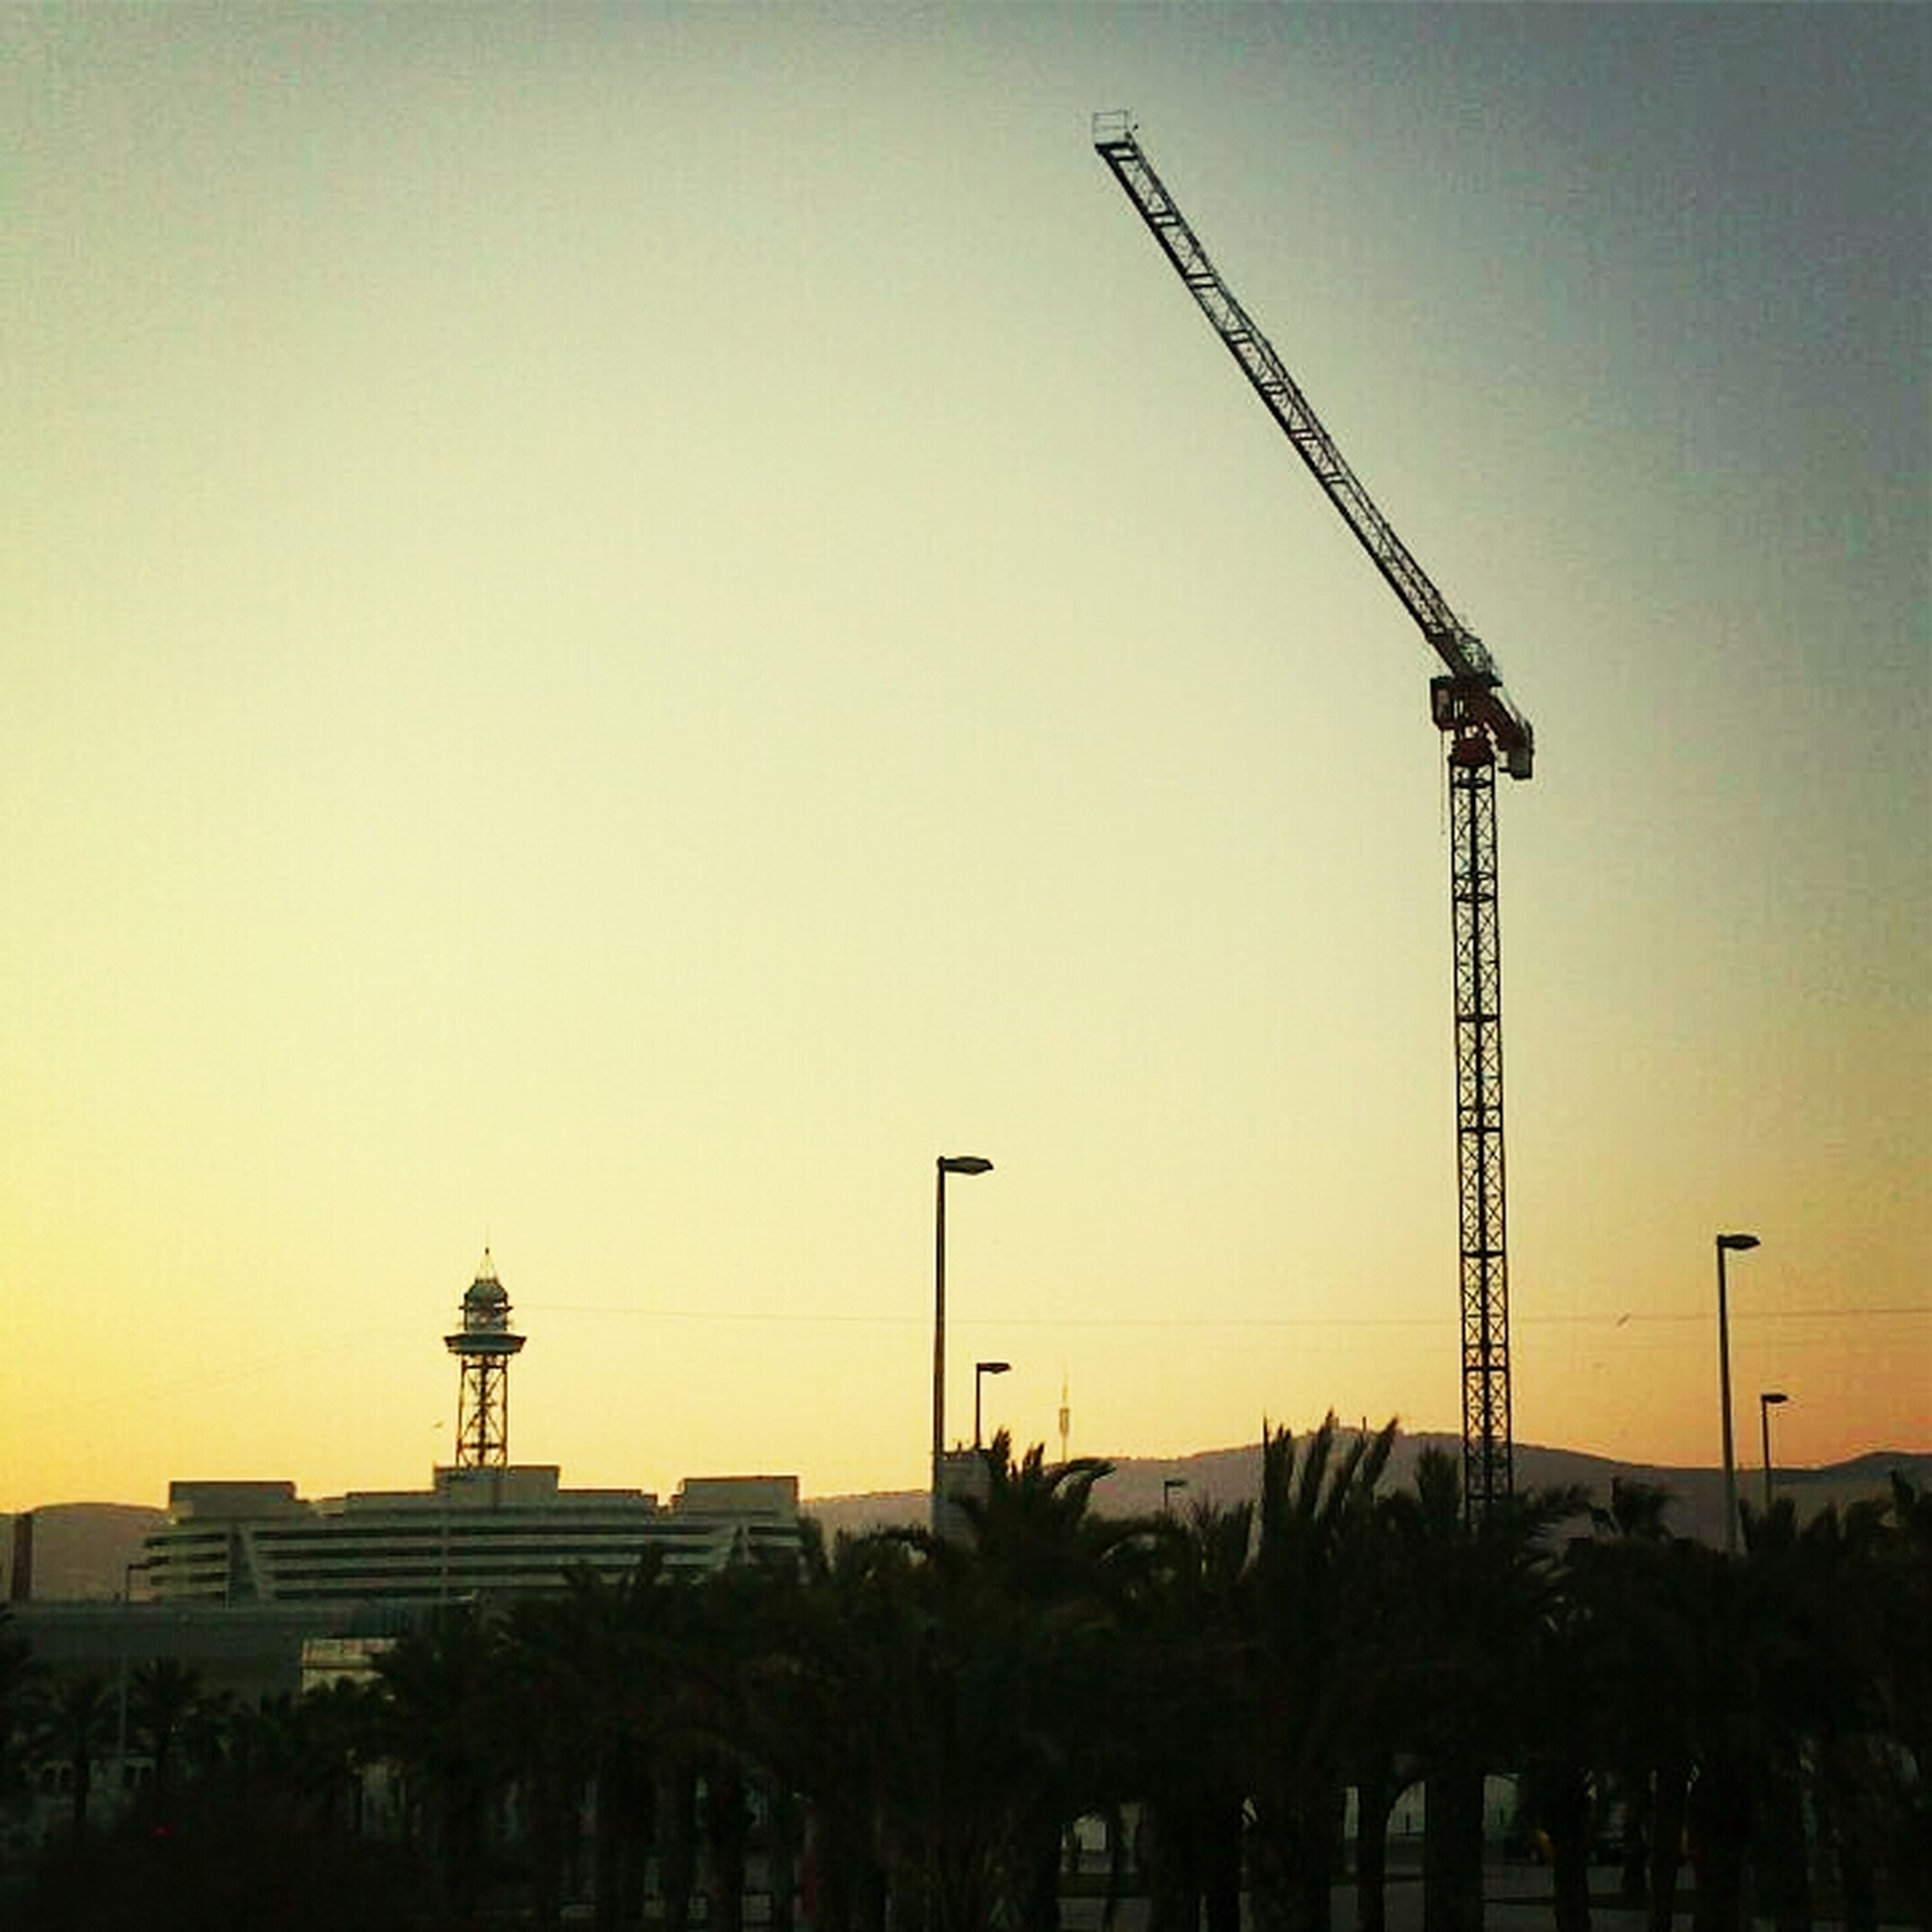 clear sky, built structure, sunset, architecture, building exterior, copy space, fuel and power generation, technology, crane - construction machinery, low angle view, development, construction site, orange color, environmental conservation, crane, wind power, silhouette, industry, alternative energy, renewable energy